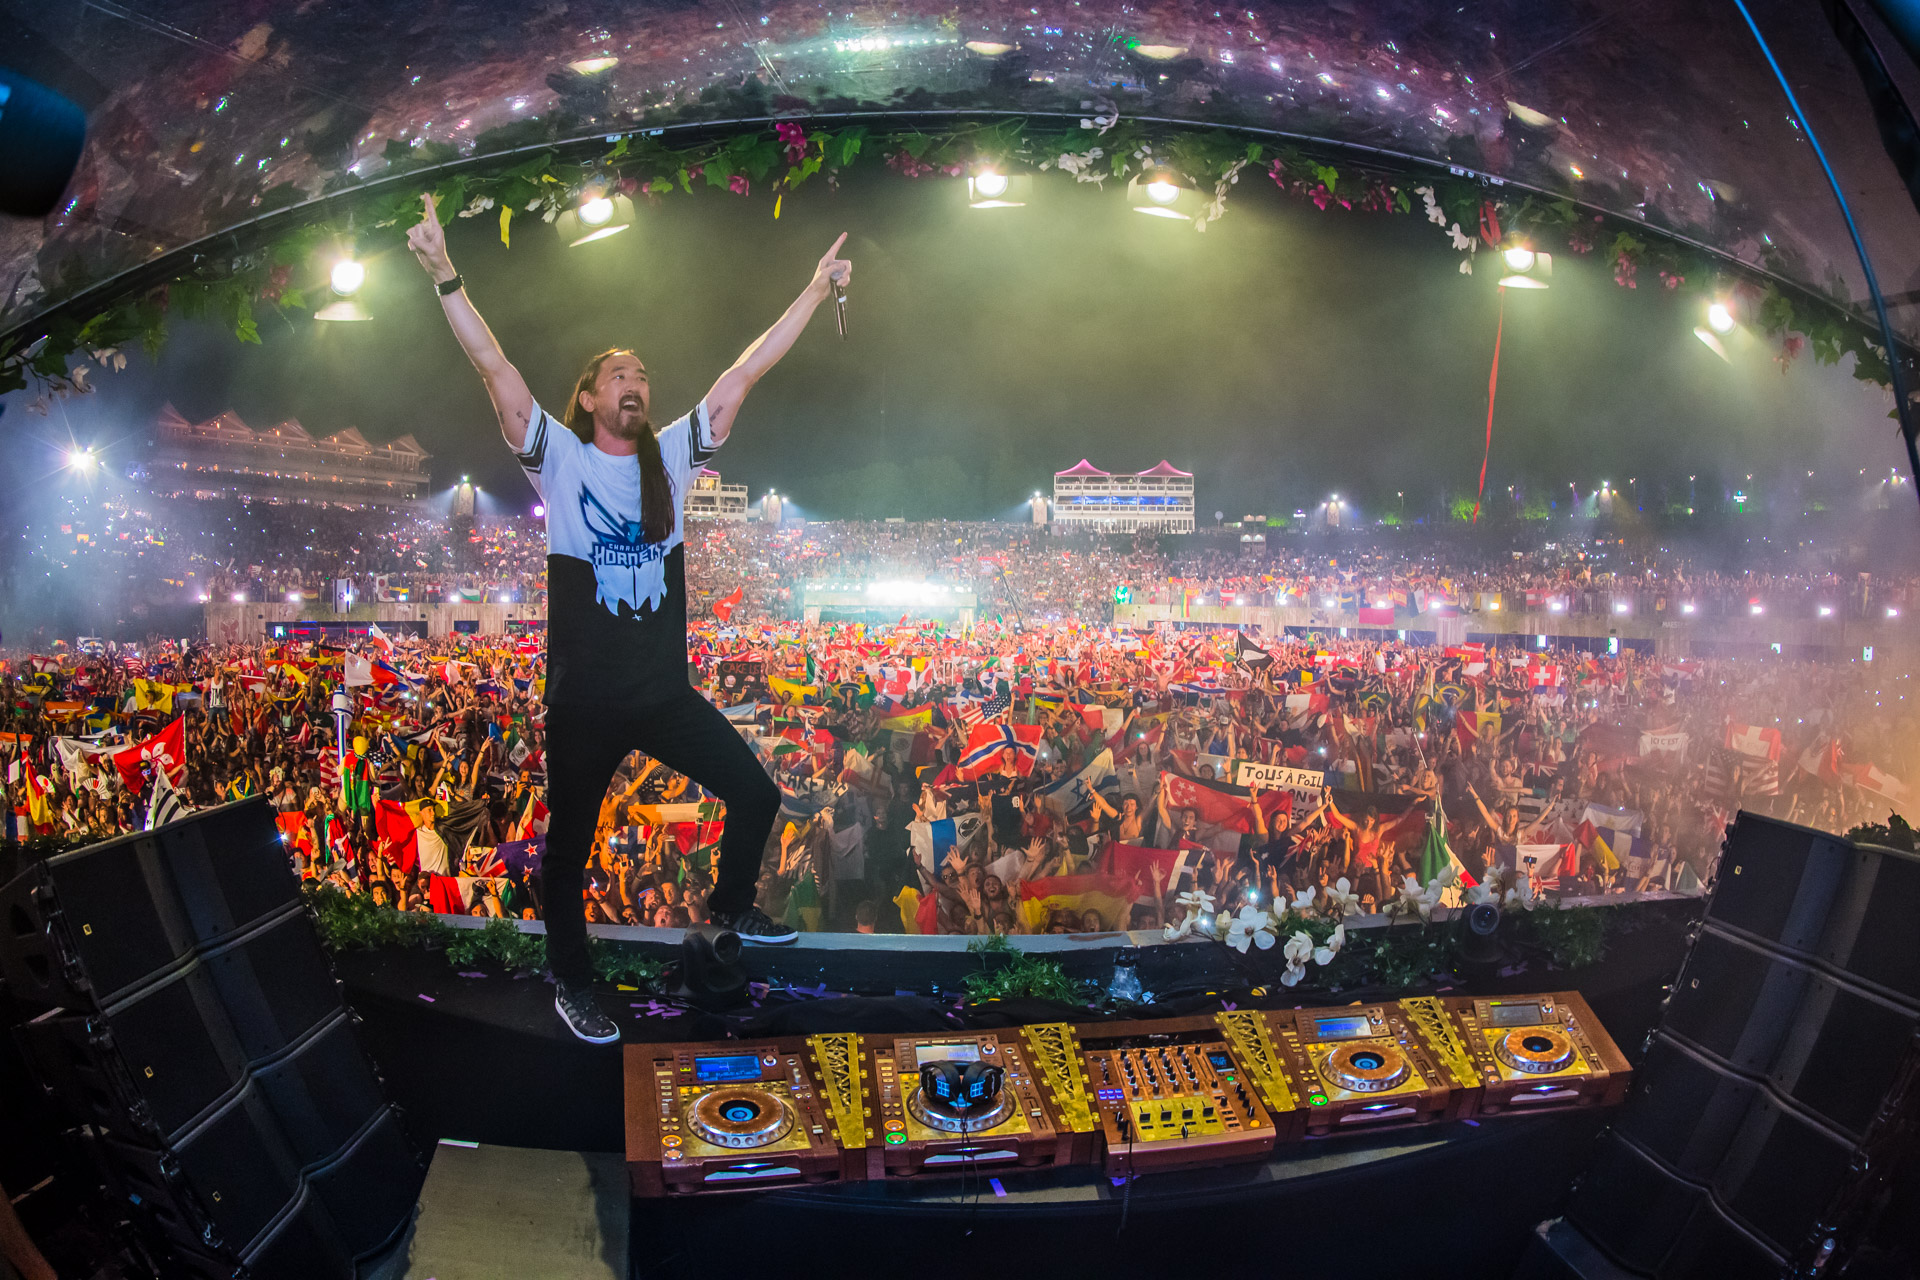 Steve Aoki @ Tomorrowland